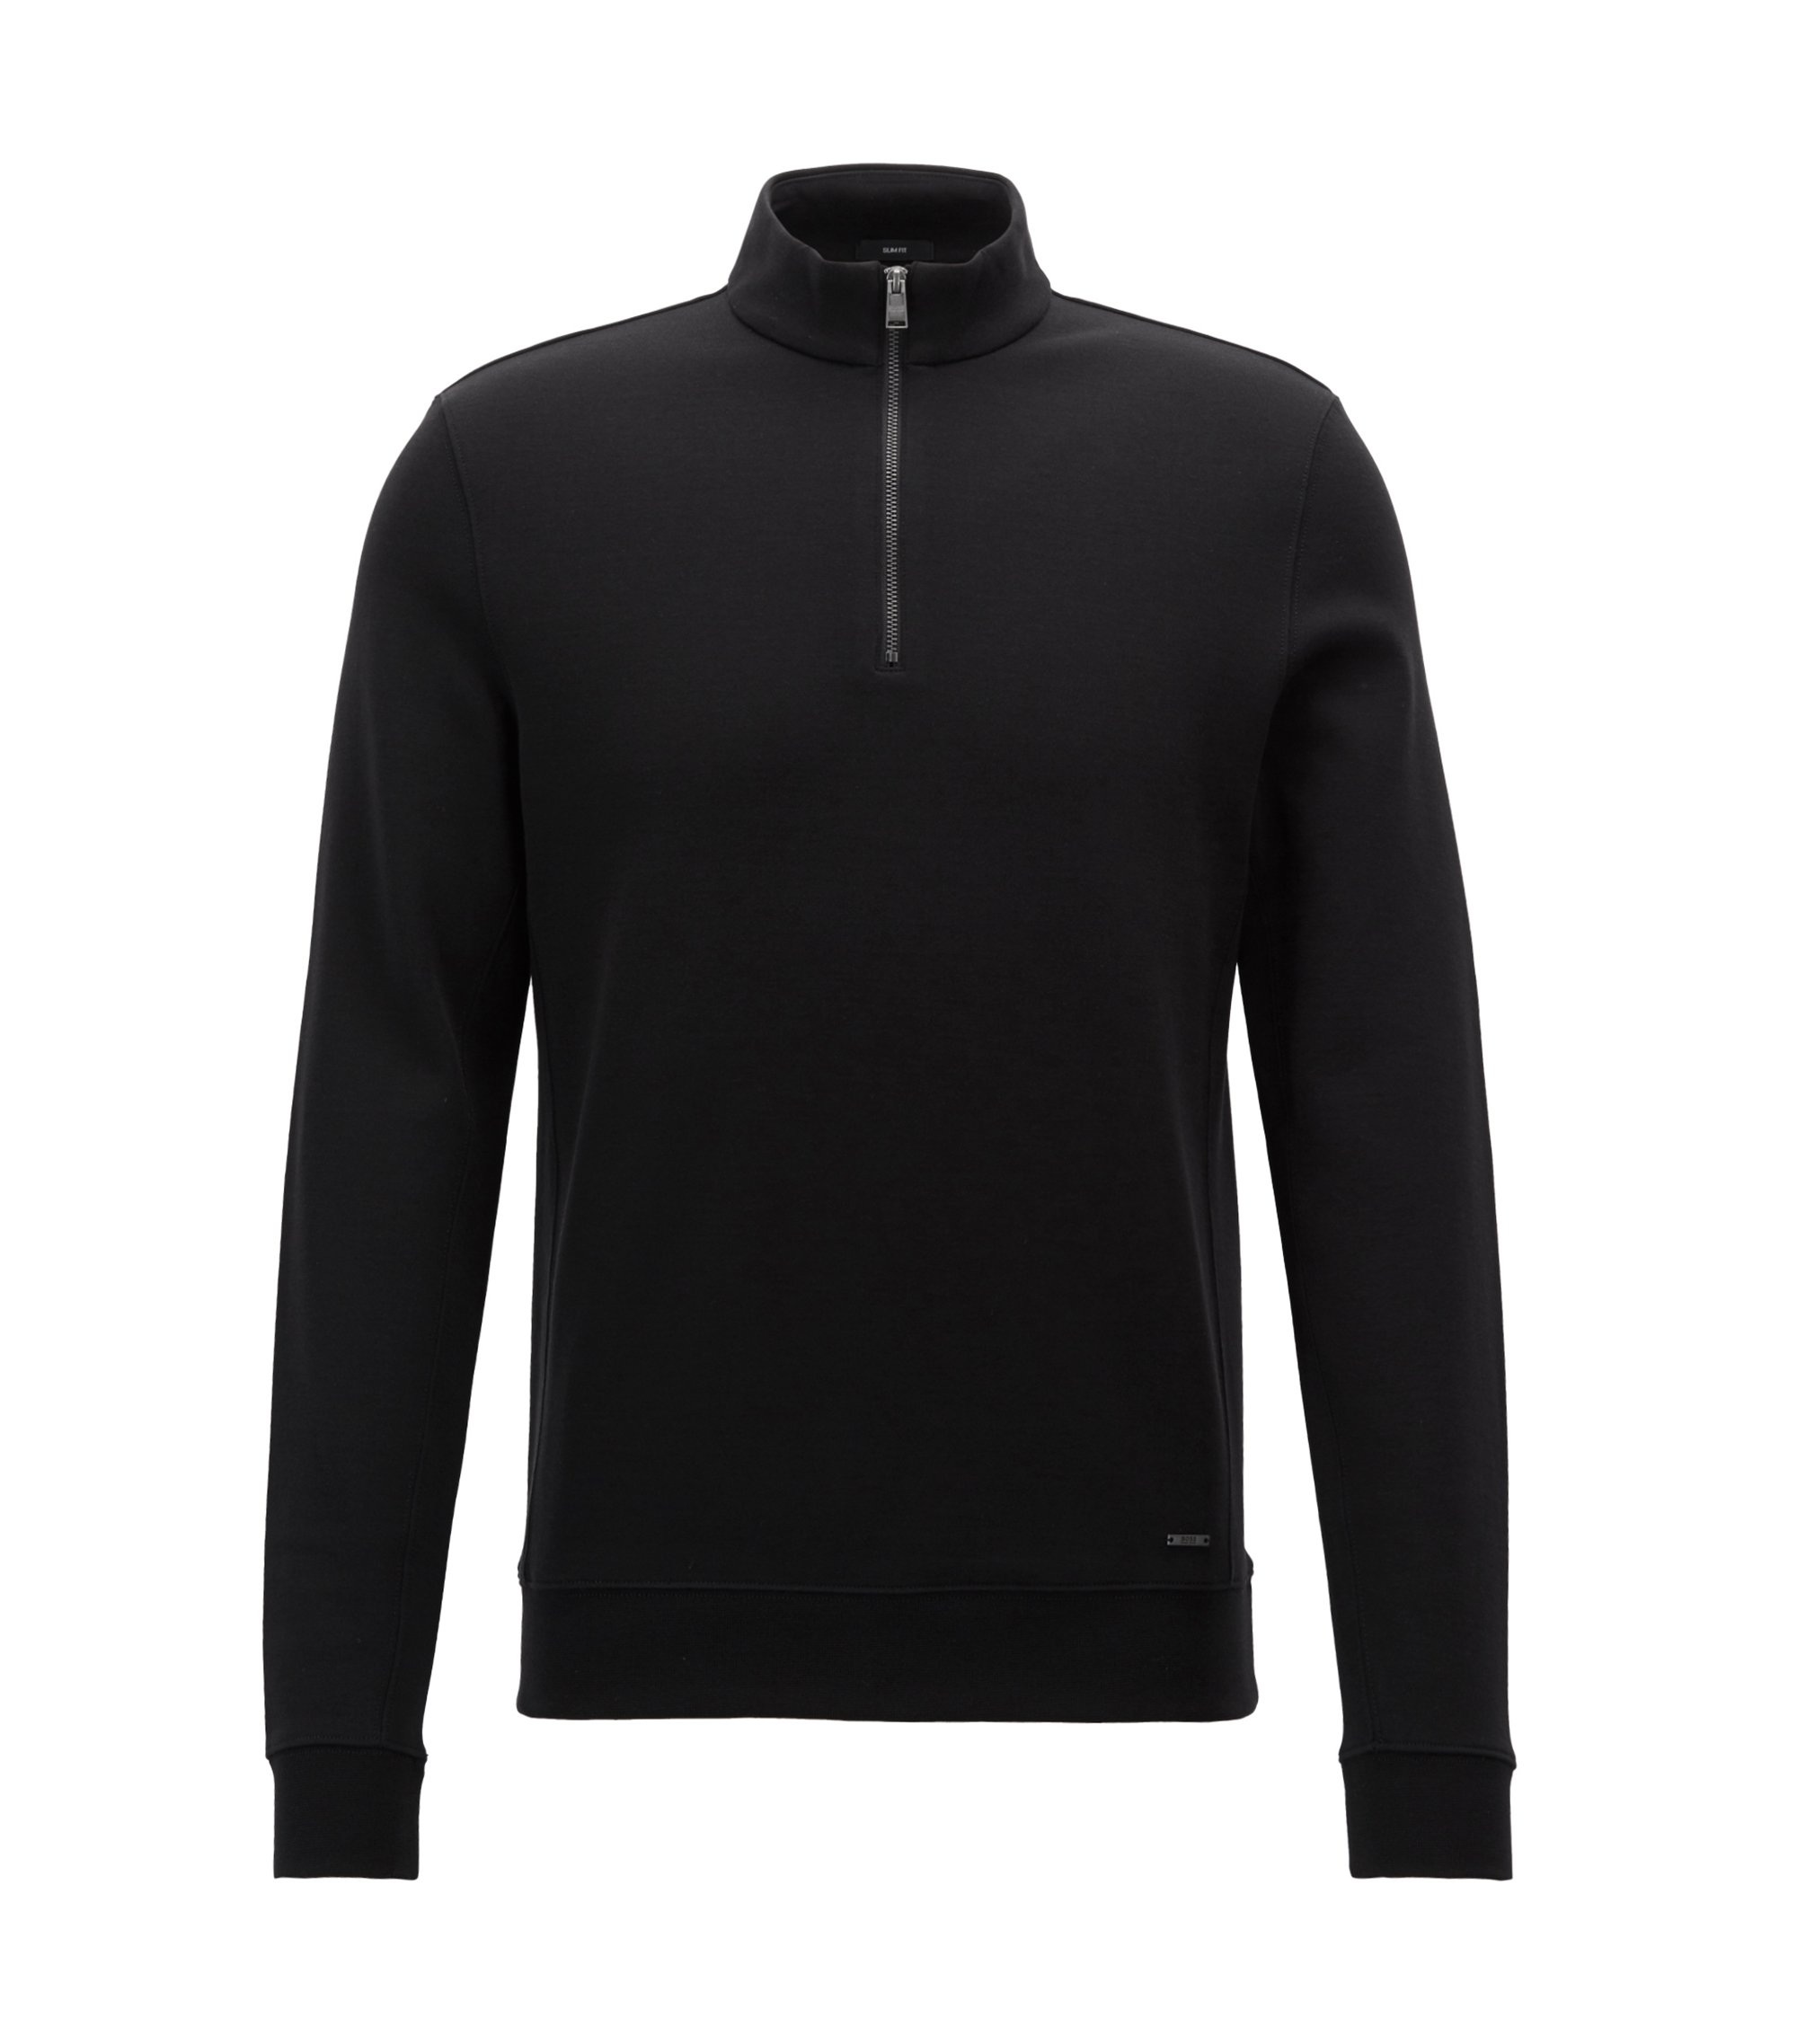 Slim-fit zip-neck sweatshirt in a cotton blend, Black